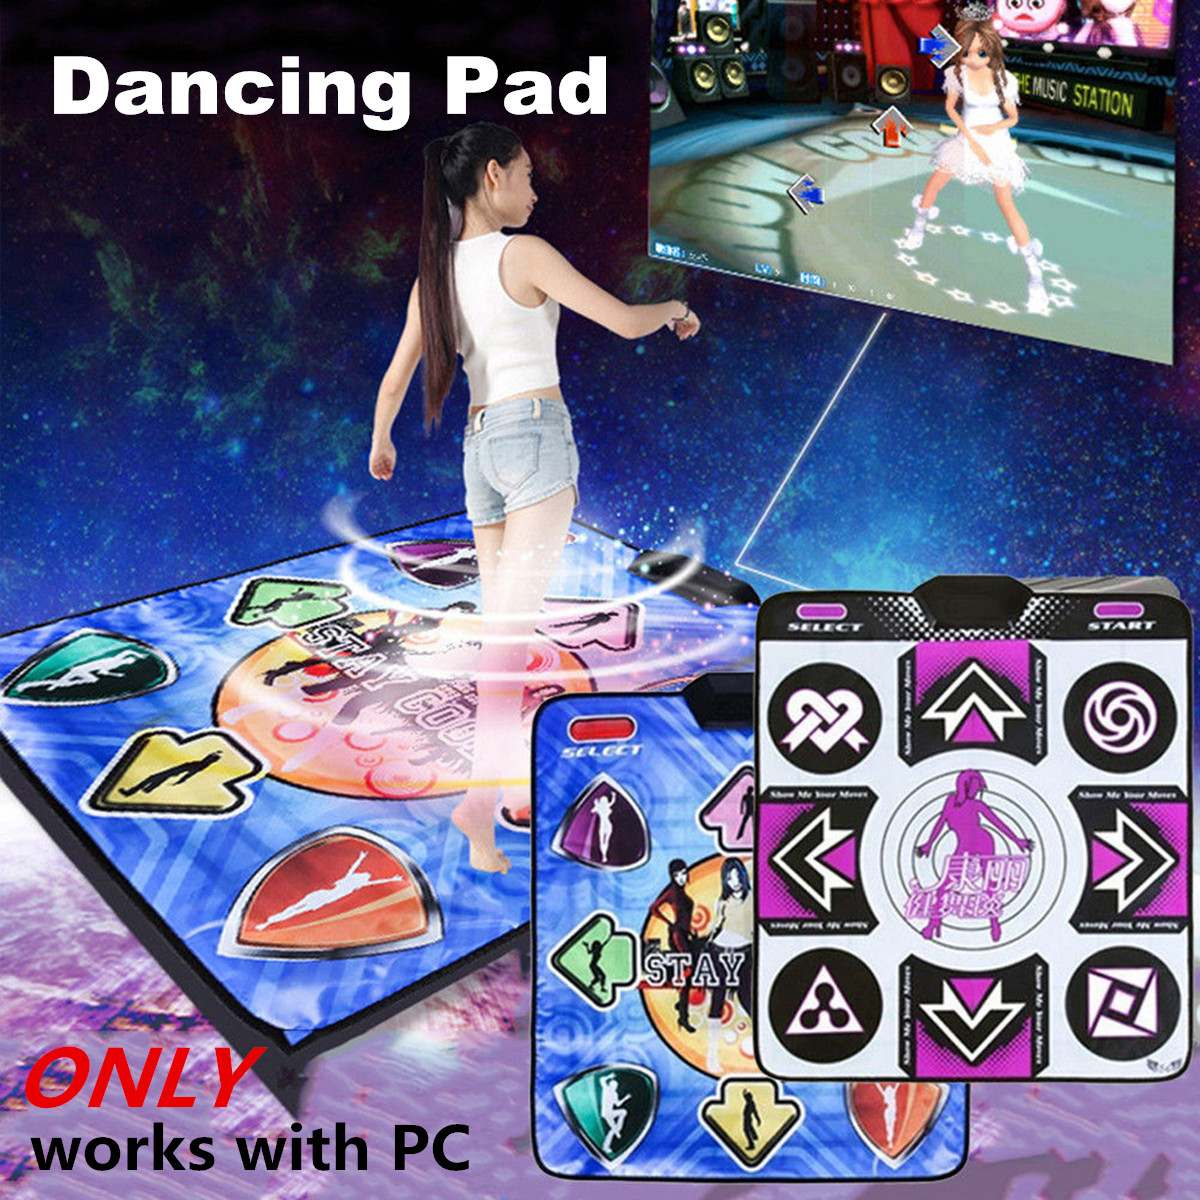 USB Non-Slip Hot Beat Dancing Step Pad Yoga Mat Video Party Game PC Wireless Dance Pad Video Party Game Fun Mat Single Dance Pad image